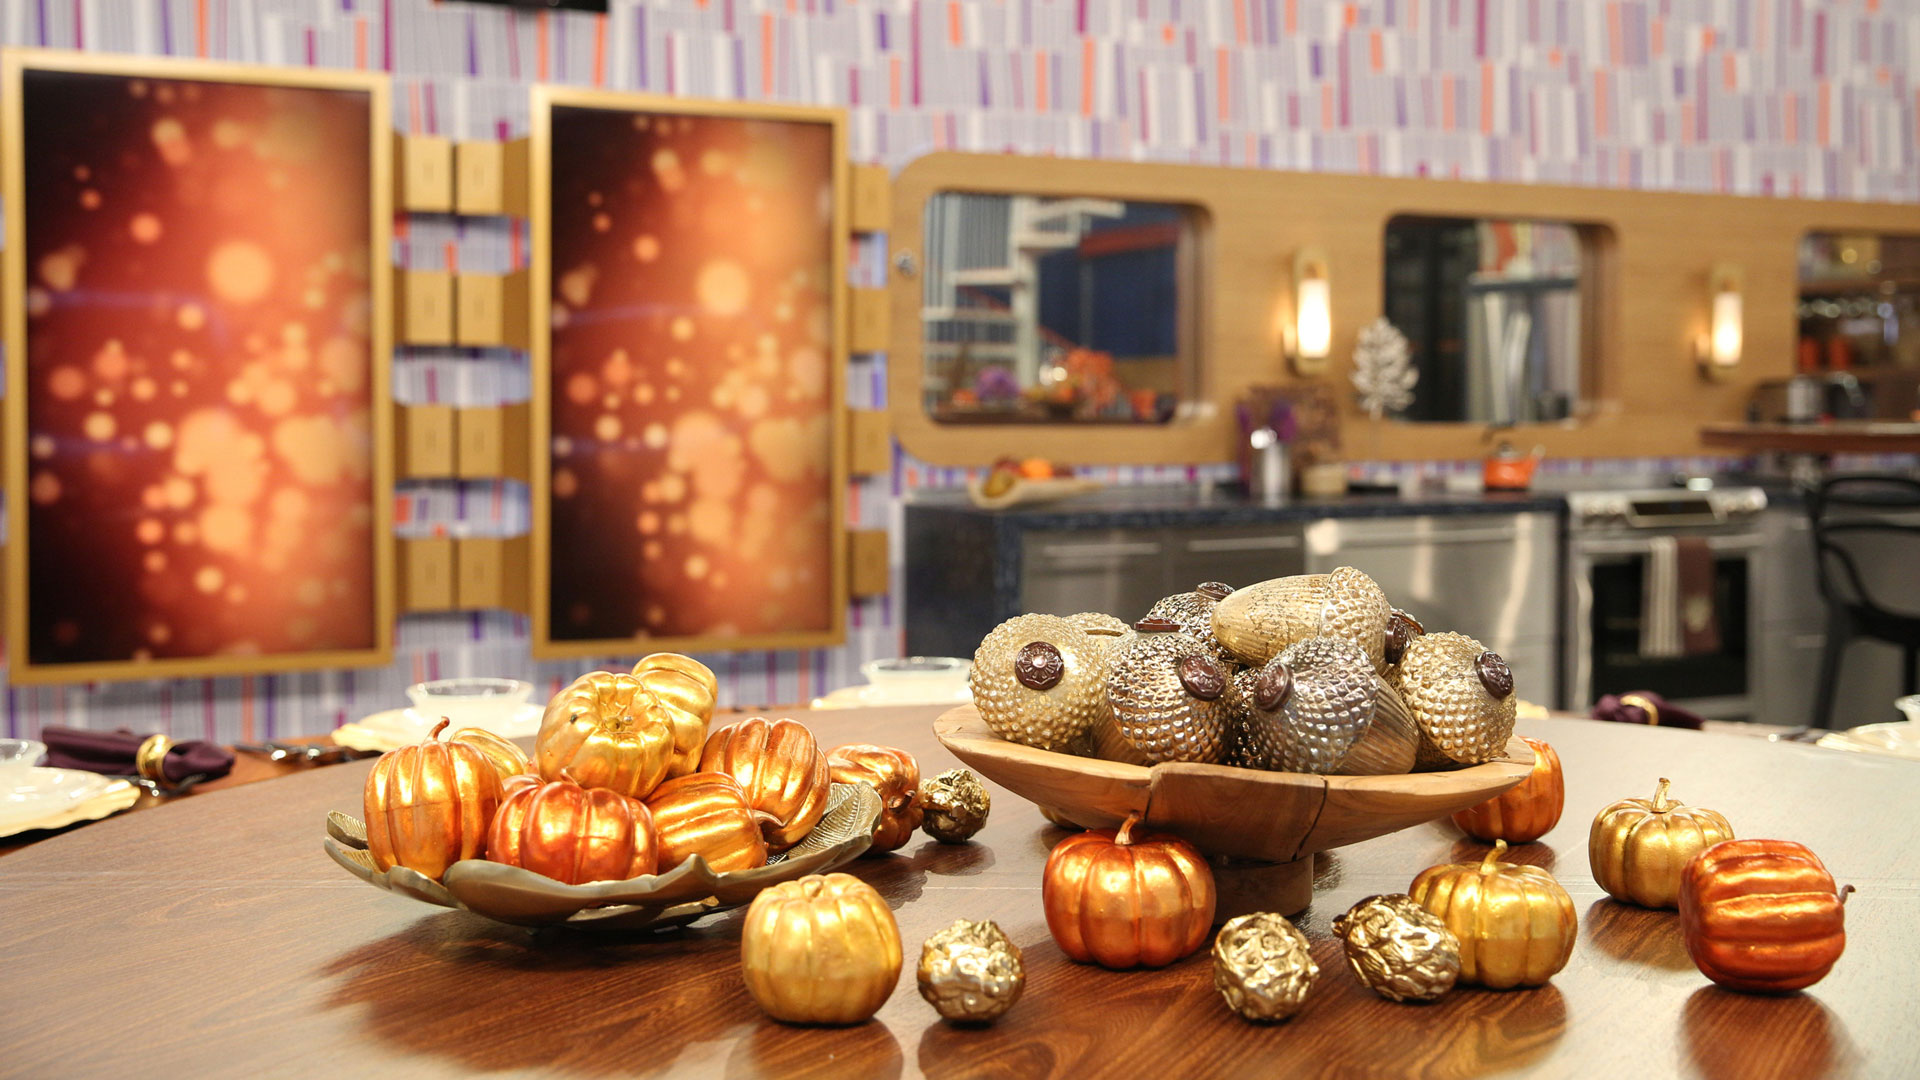 The Houseguests might not be able to visit a pumpkin patch, but there's a bushel of faux squash in the kitchen.